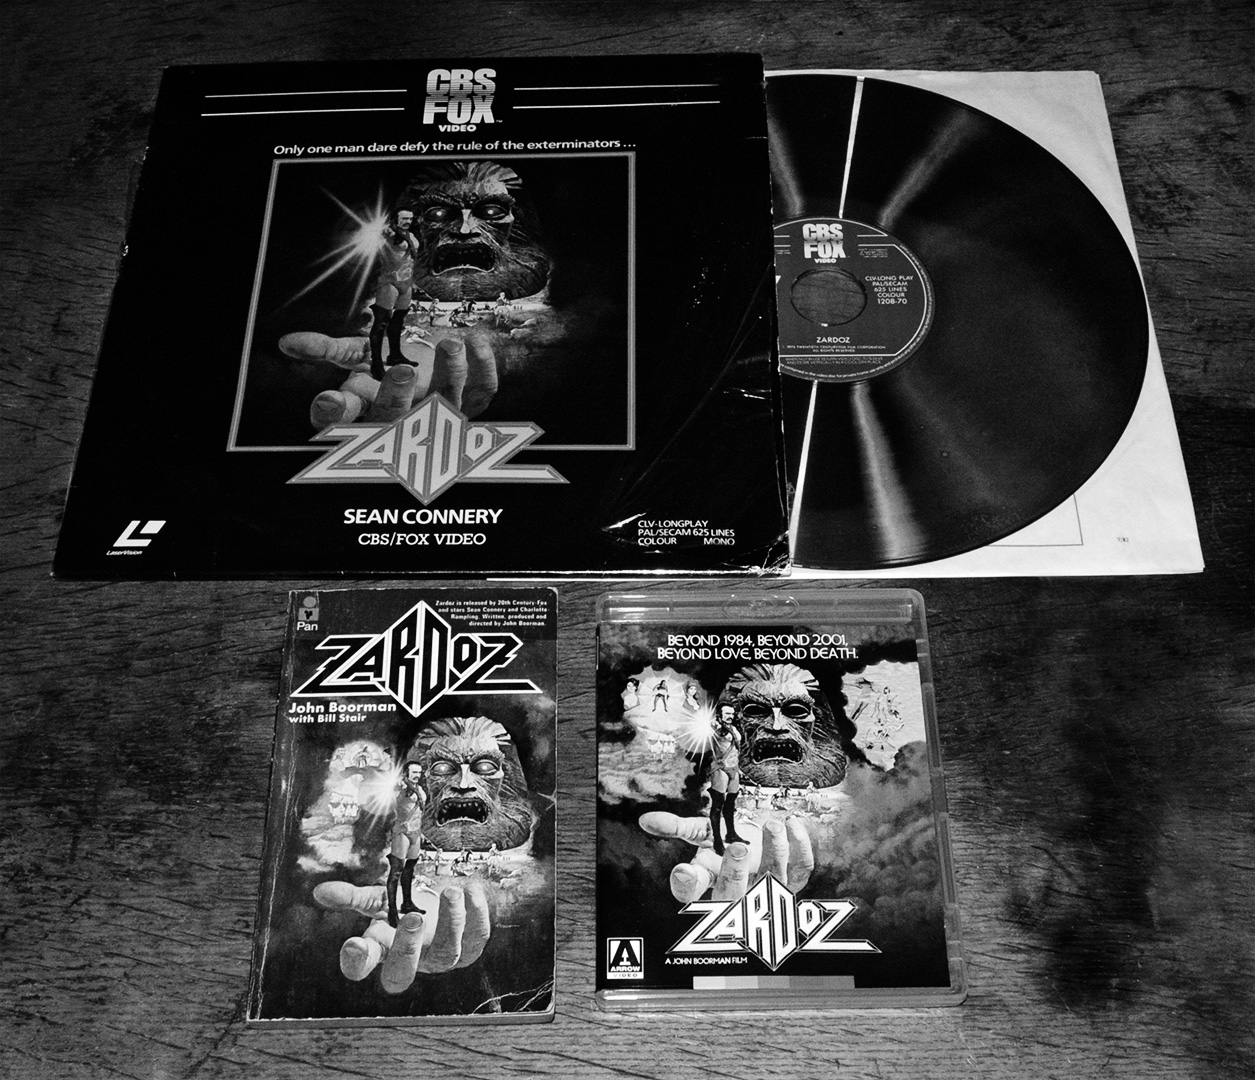 Zardoz-laser disc-novel-Arrow Bluray-A Year In The Country